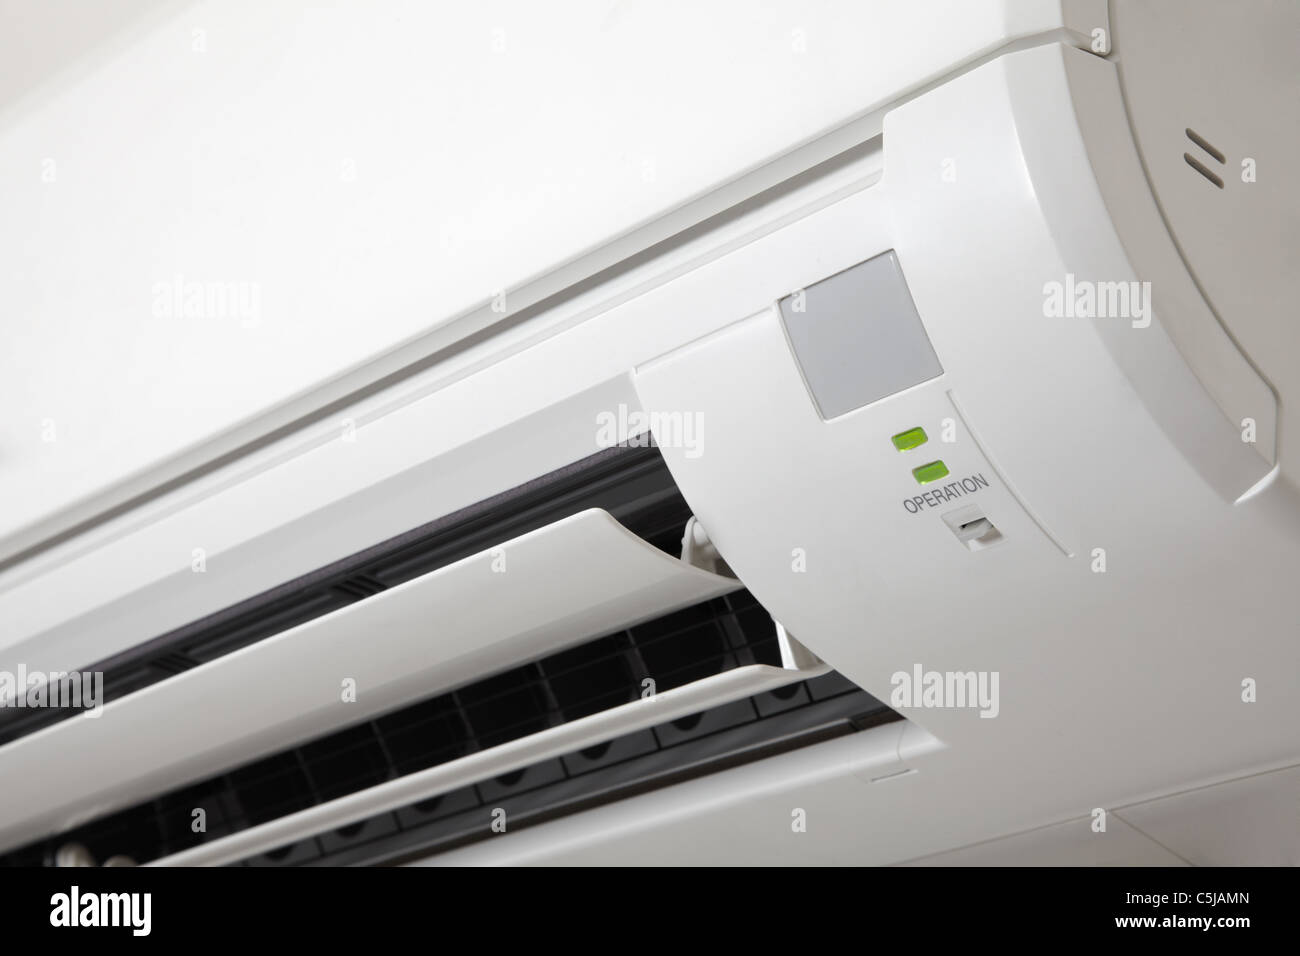 Air conditioner - Stock Image